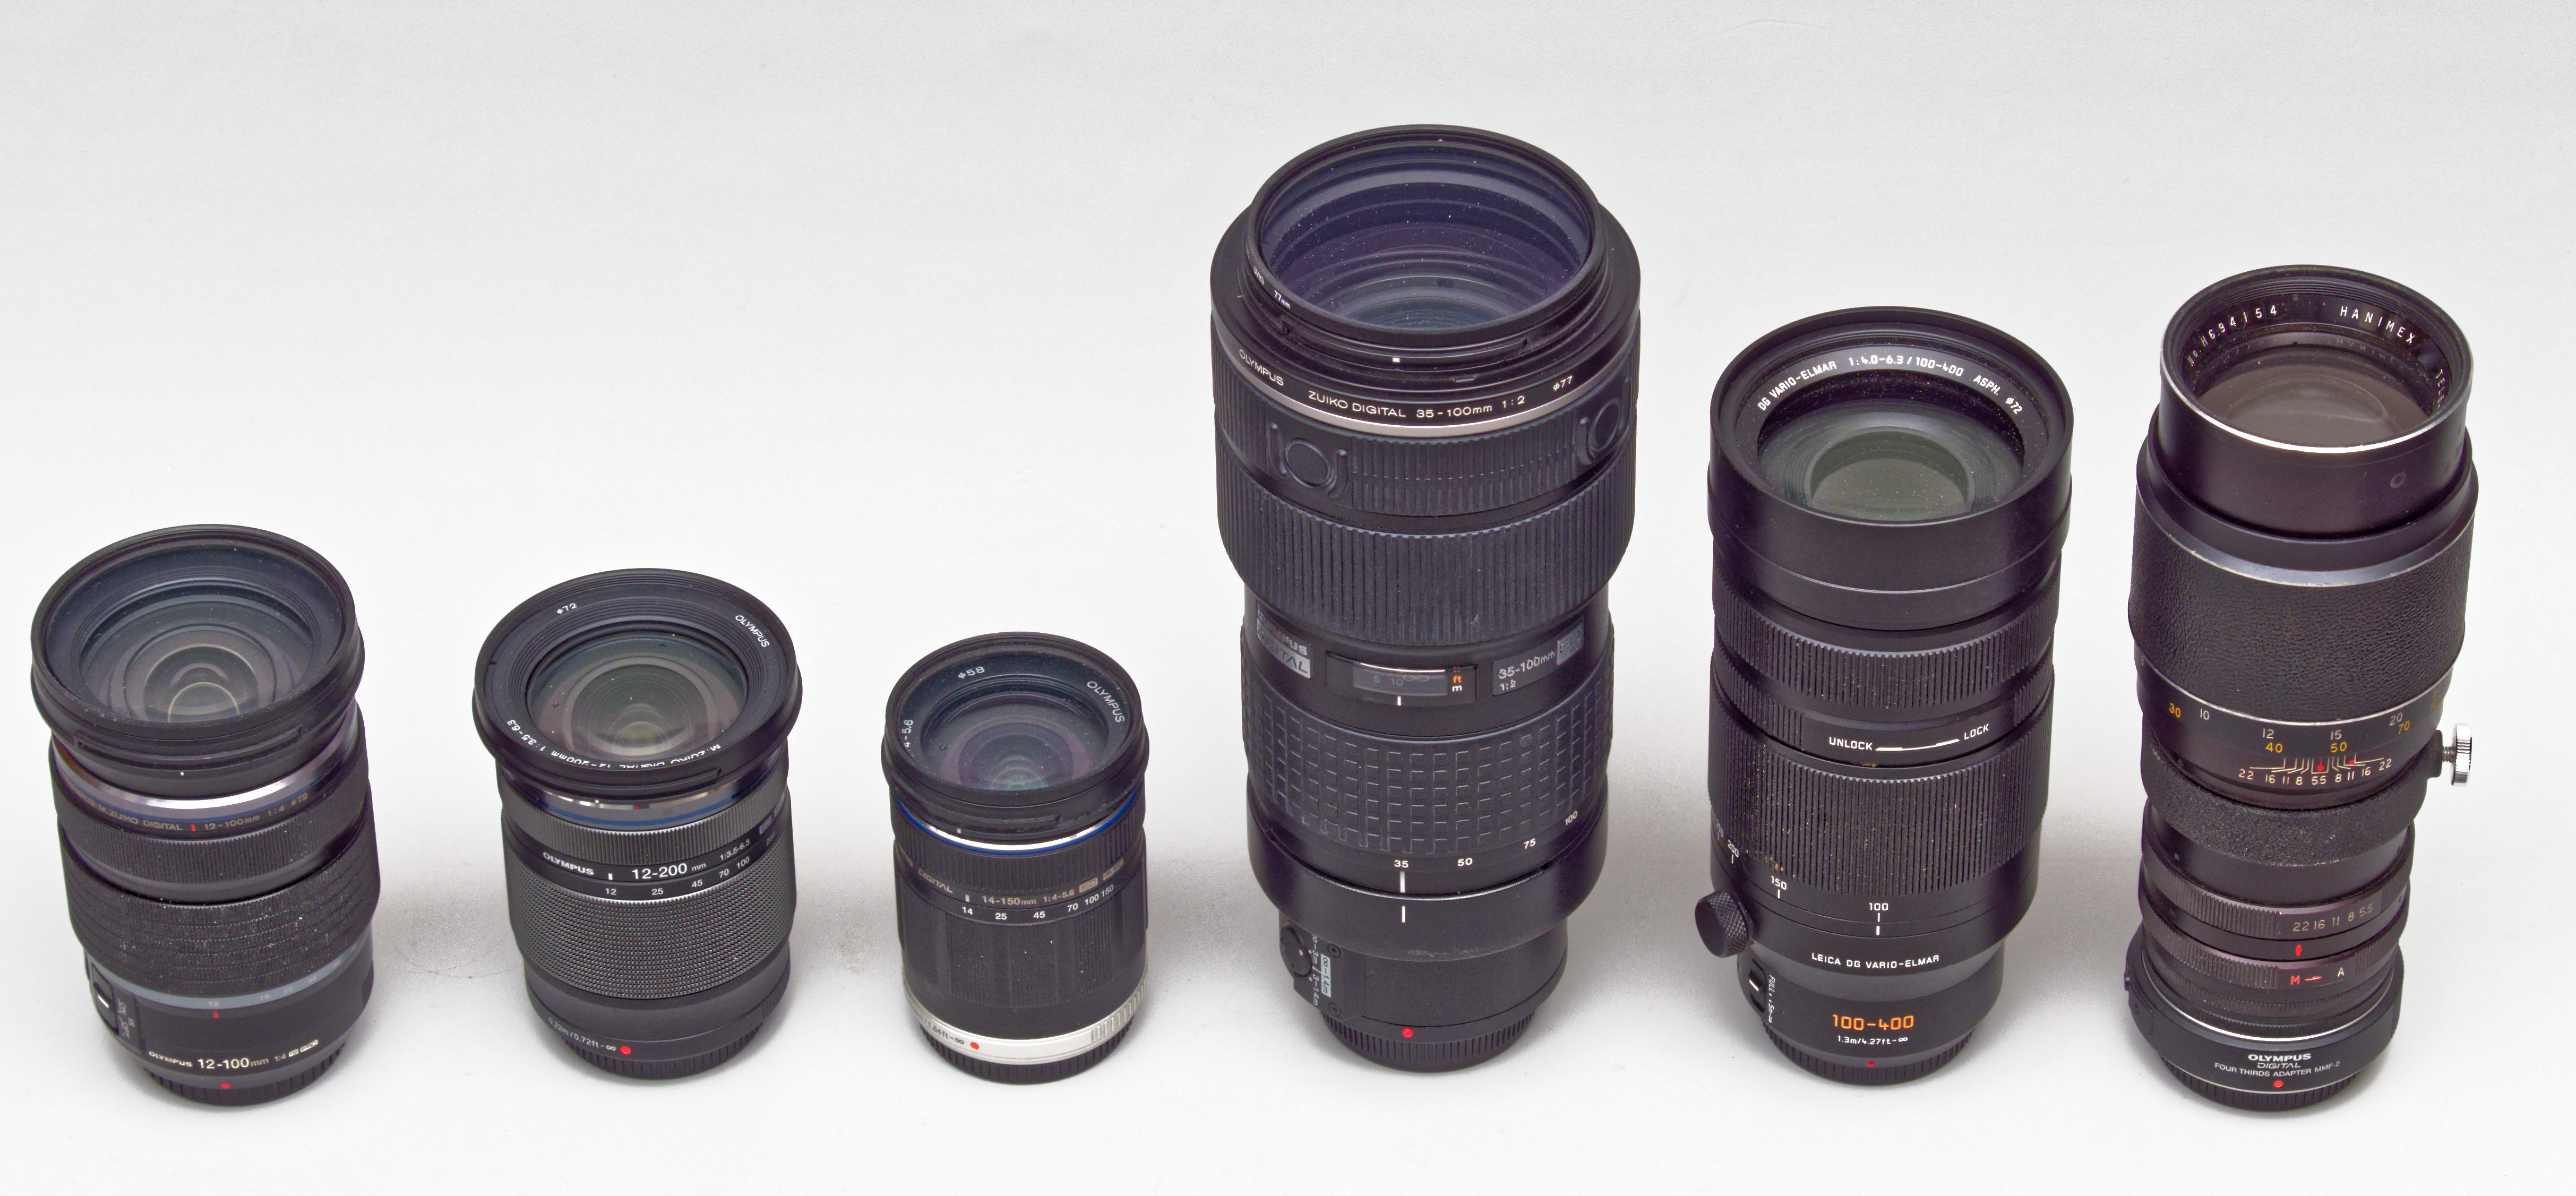 This should be Telephoto-lenses-3.jpeg.  Is it missing?